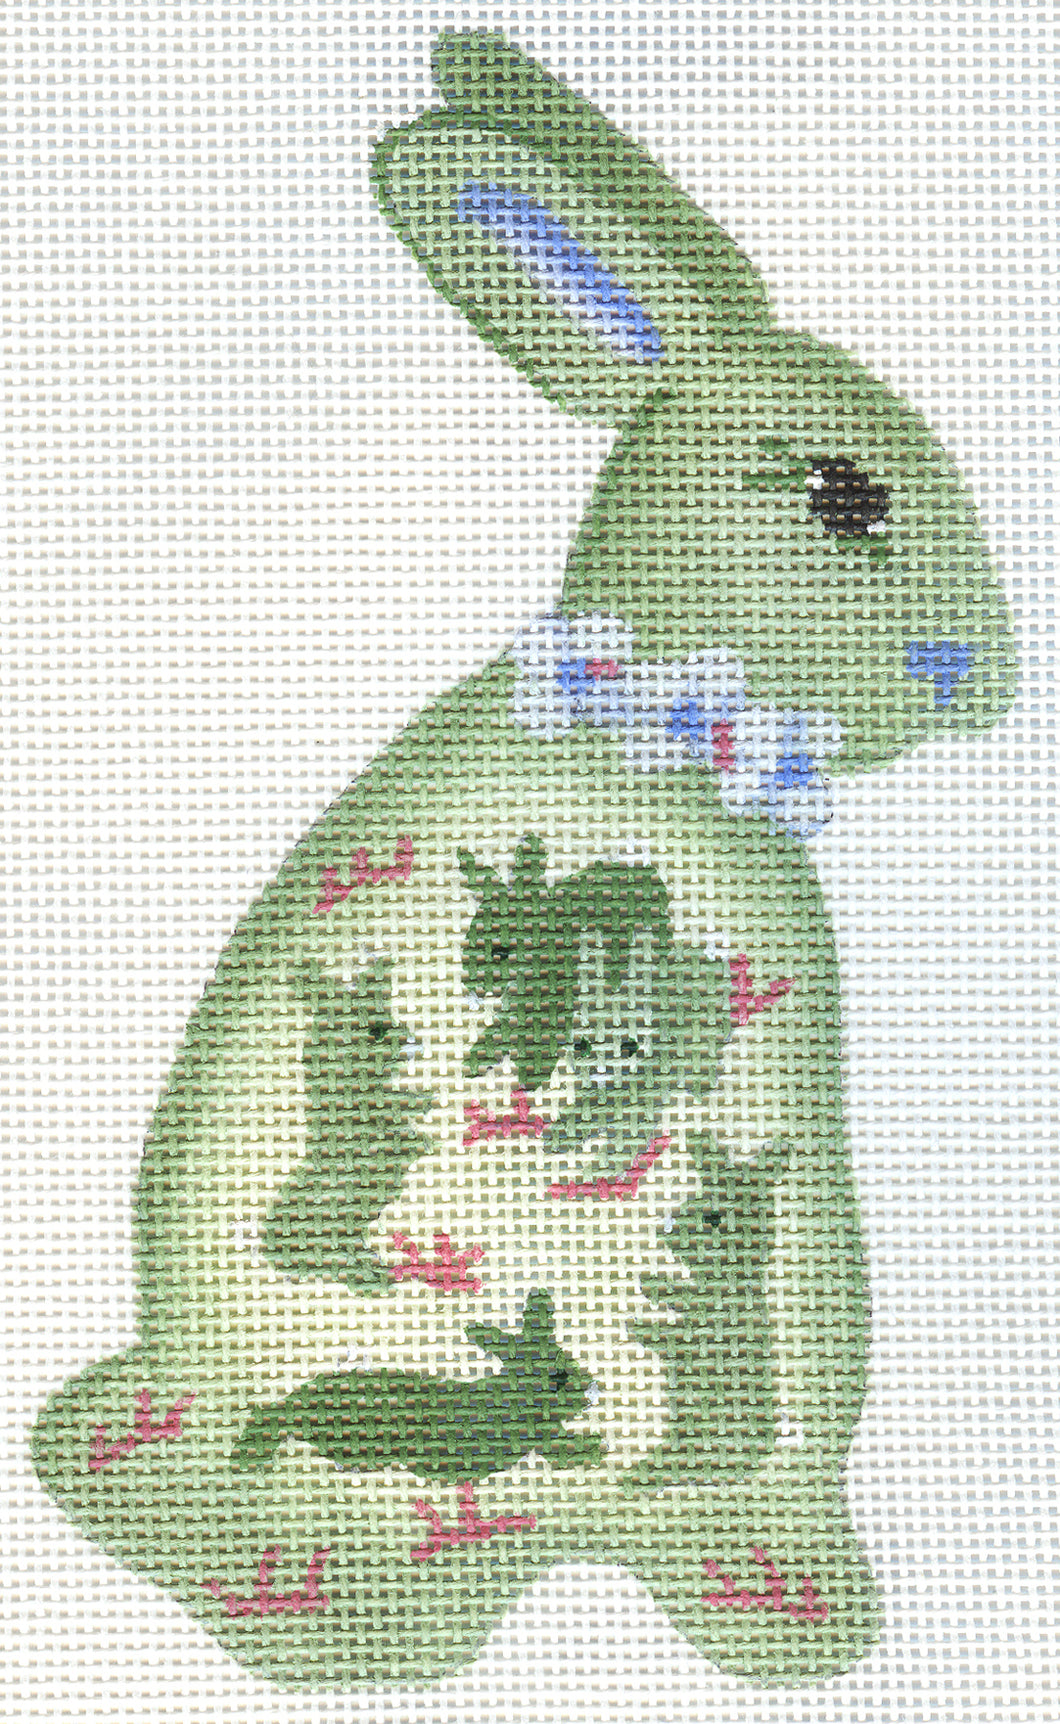 SB-03 Small Green Bunny